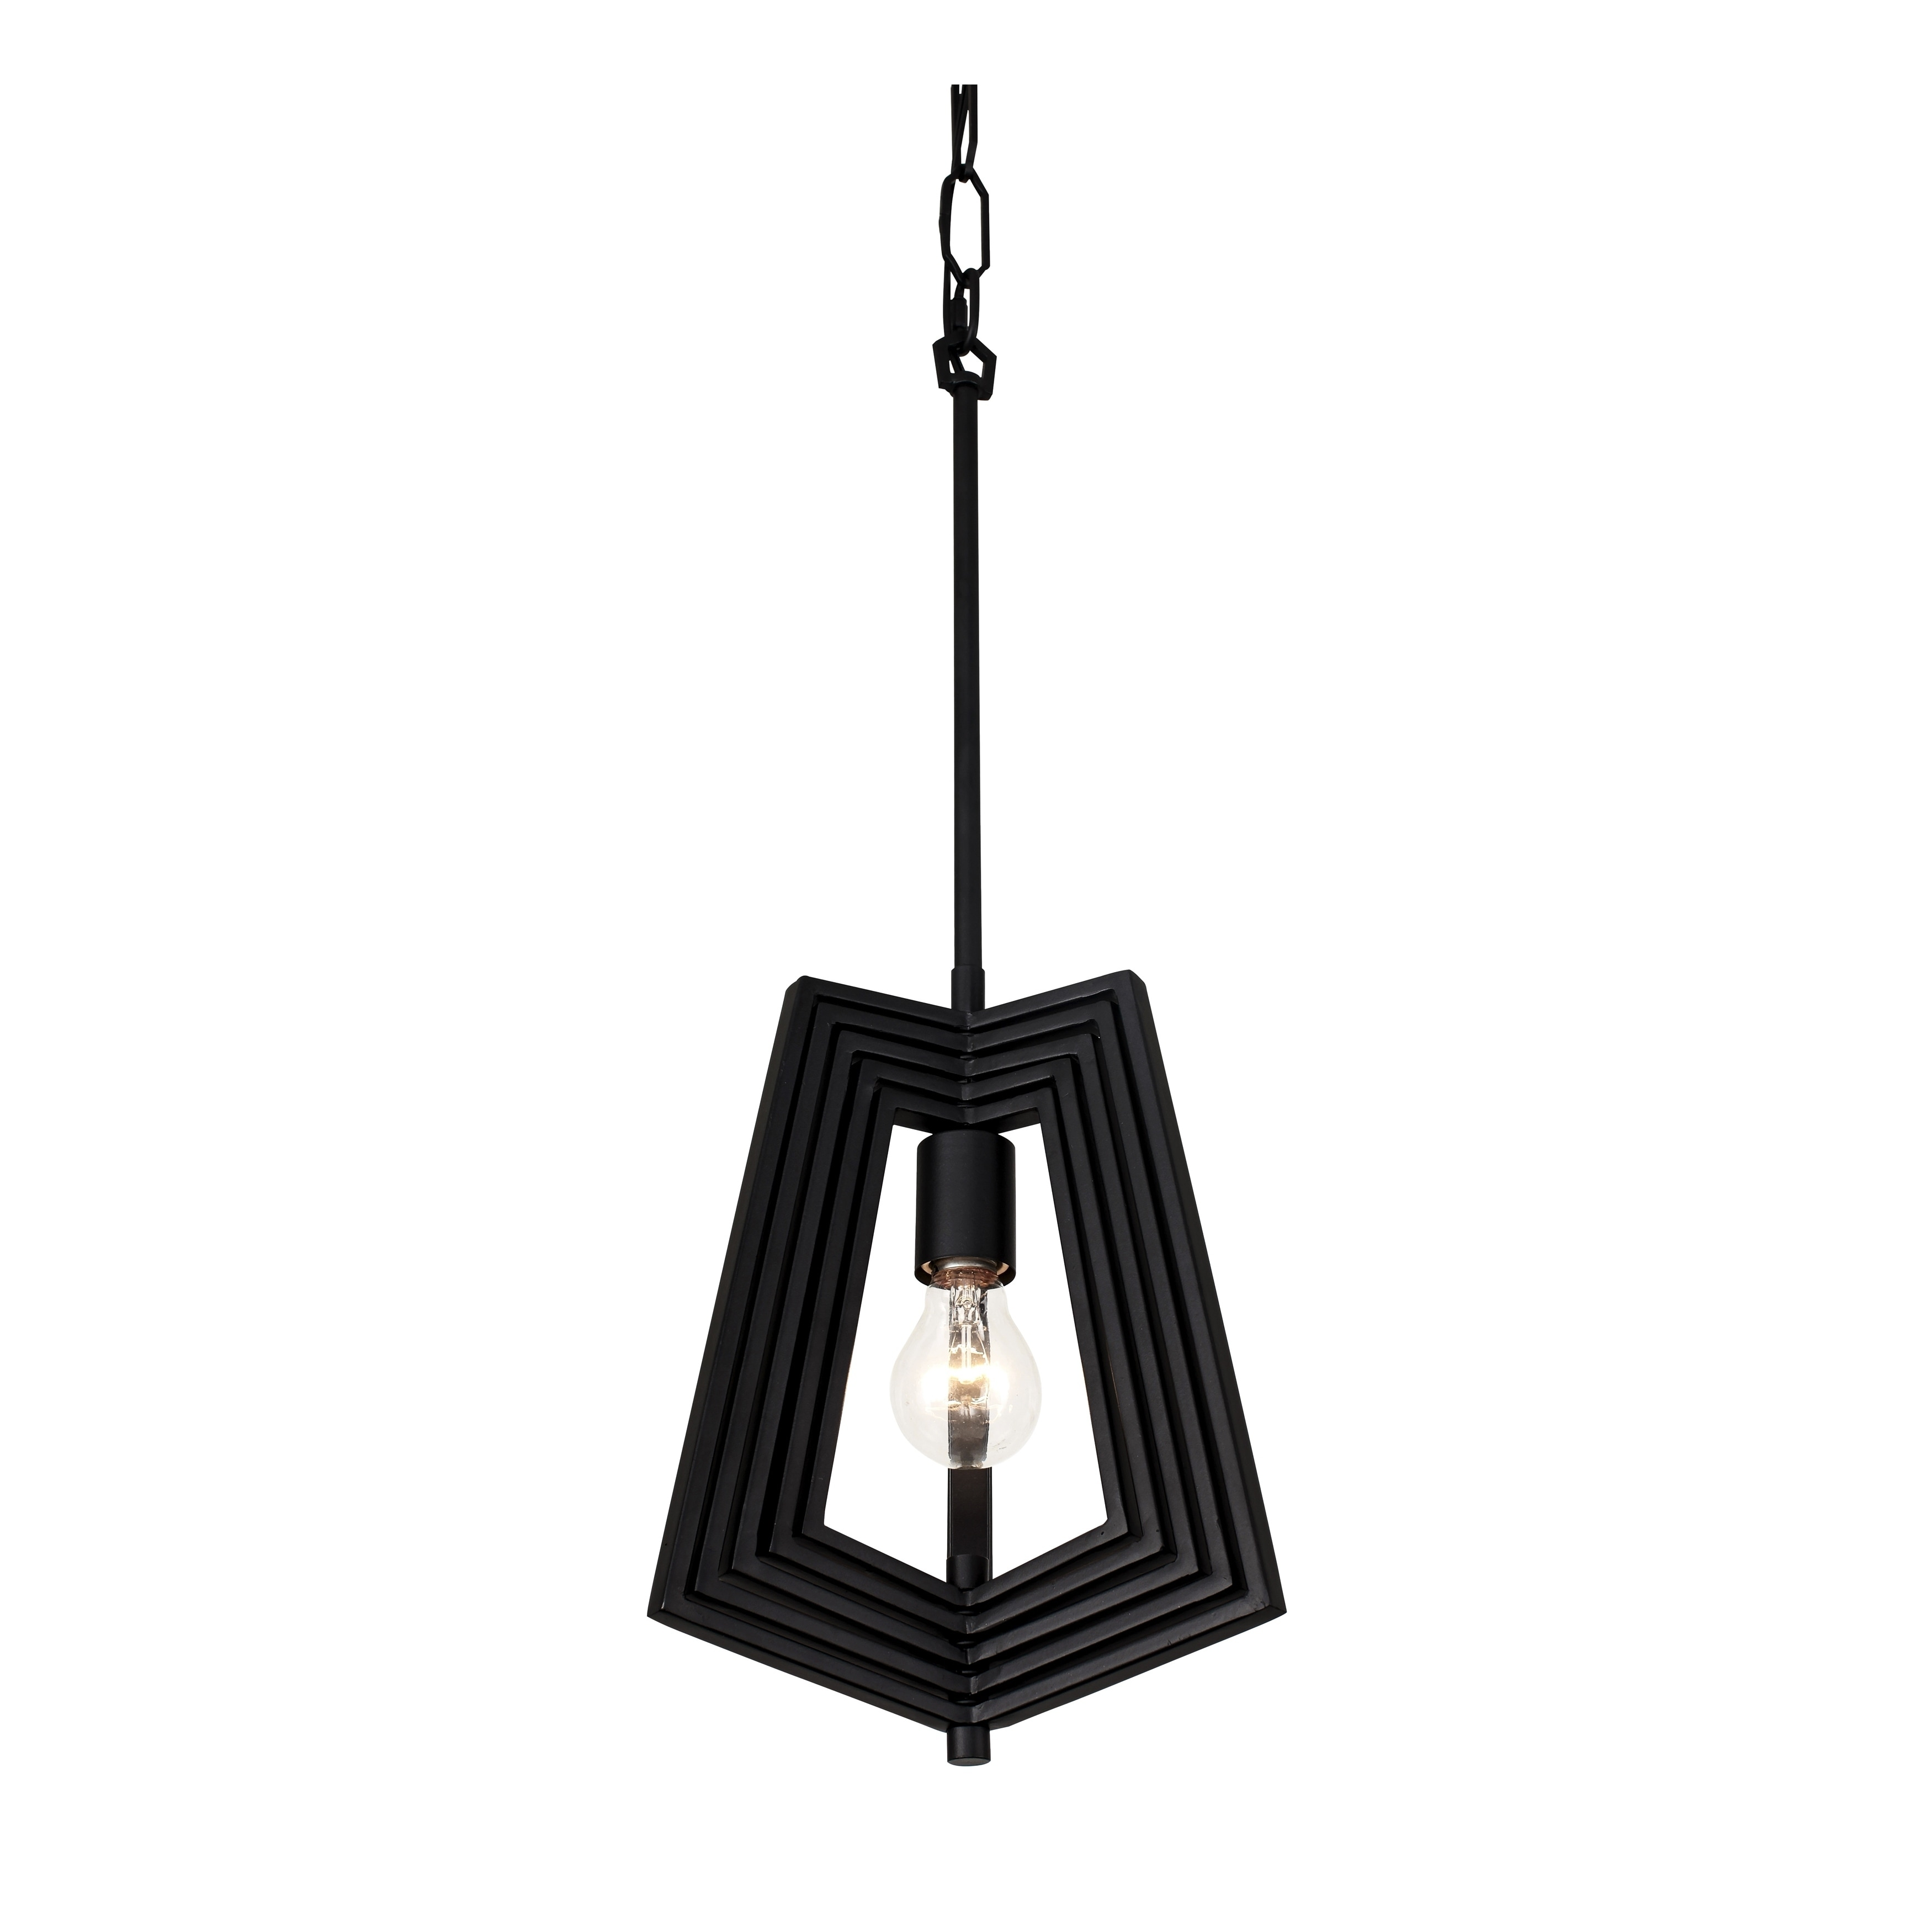 caged lights light gold fisherman black eu ceilings with lanterns shade ceiling